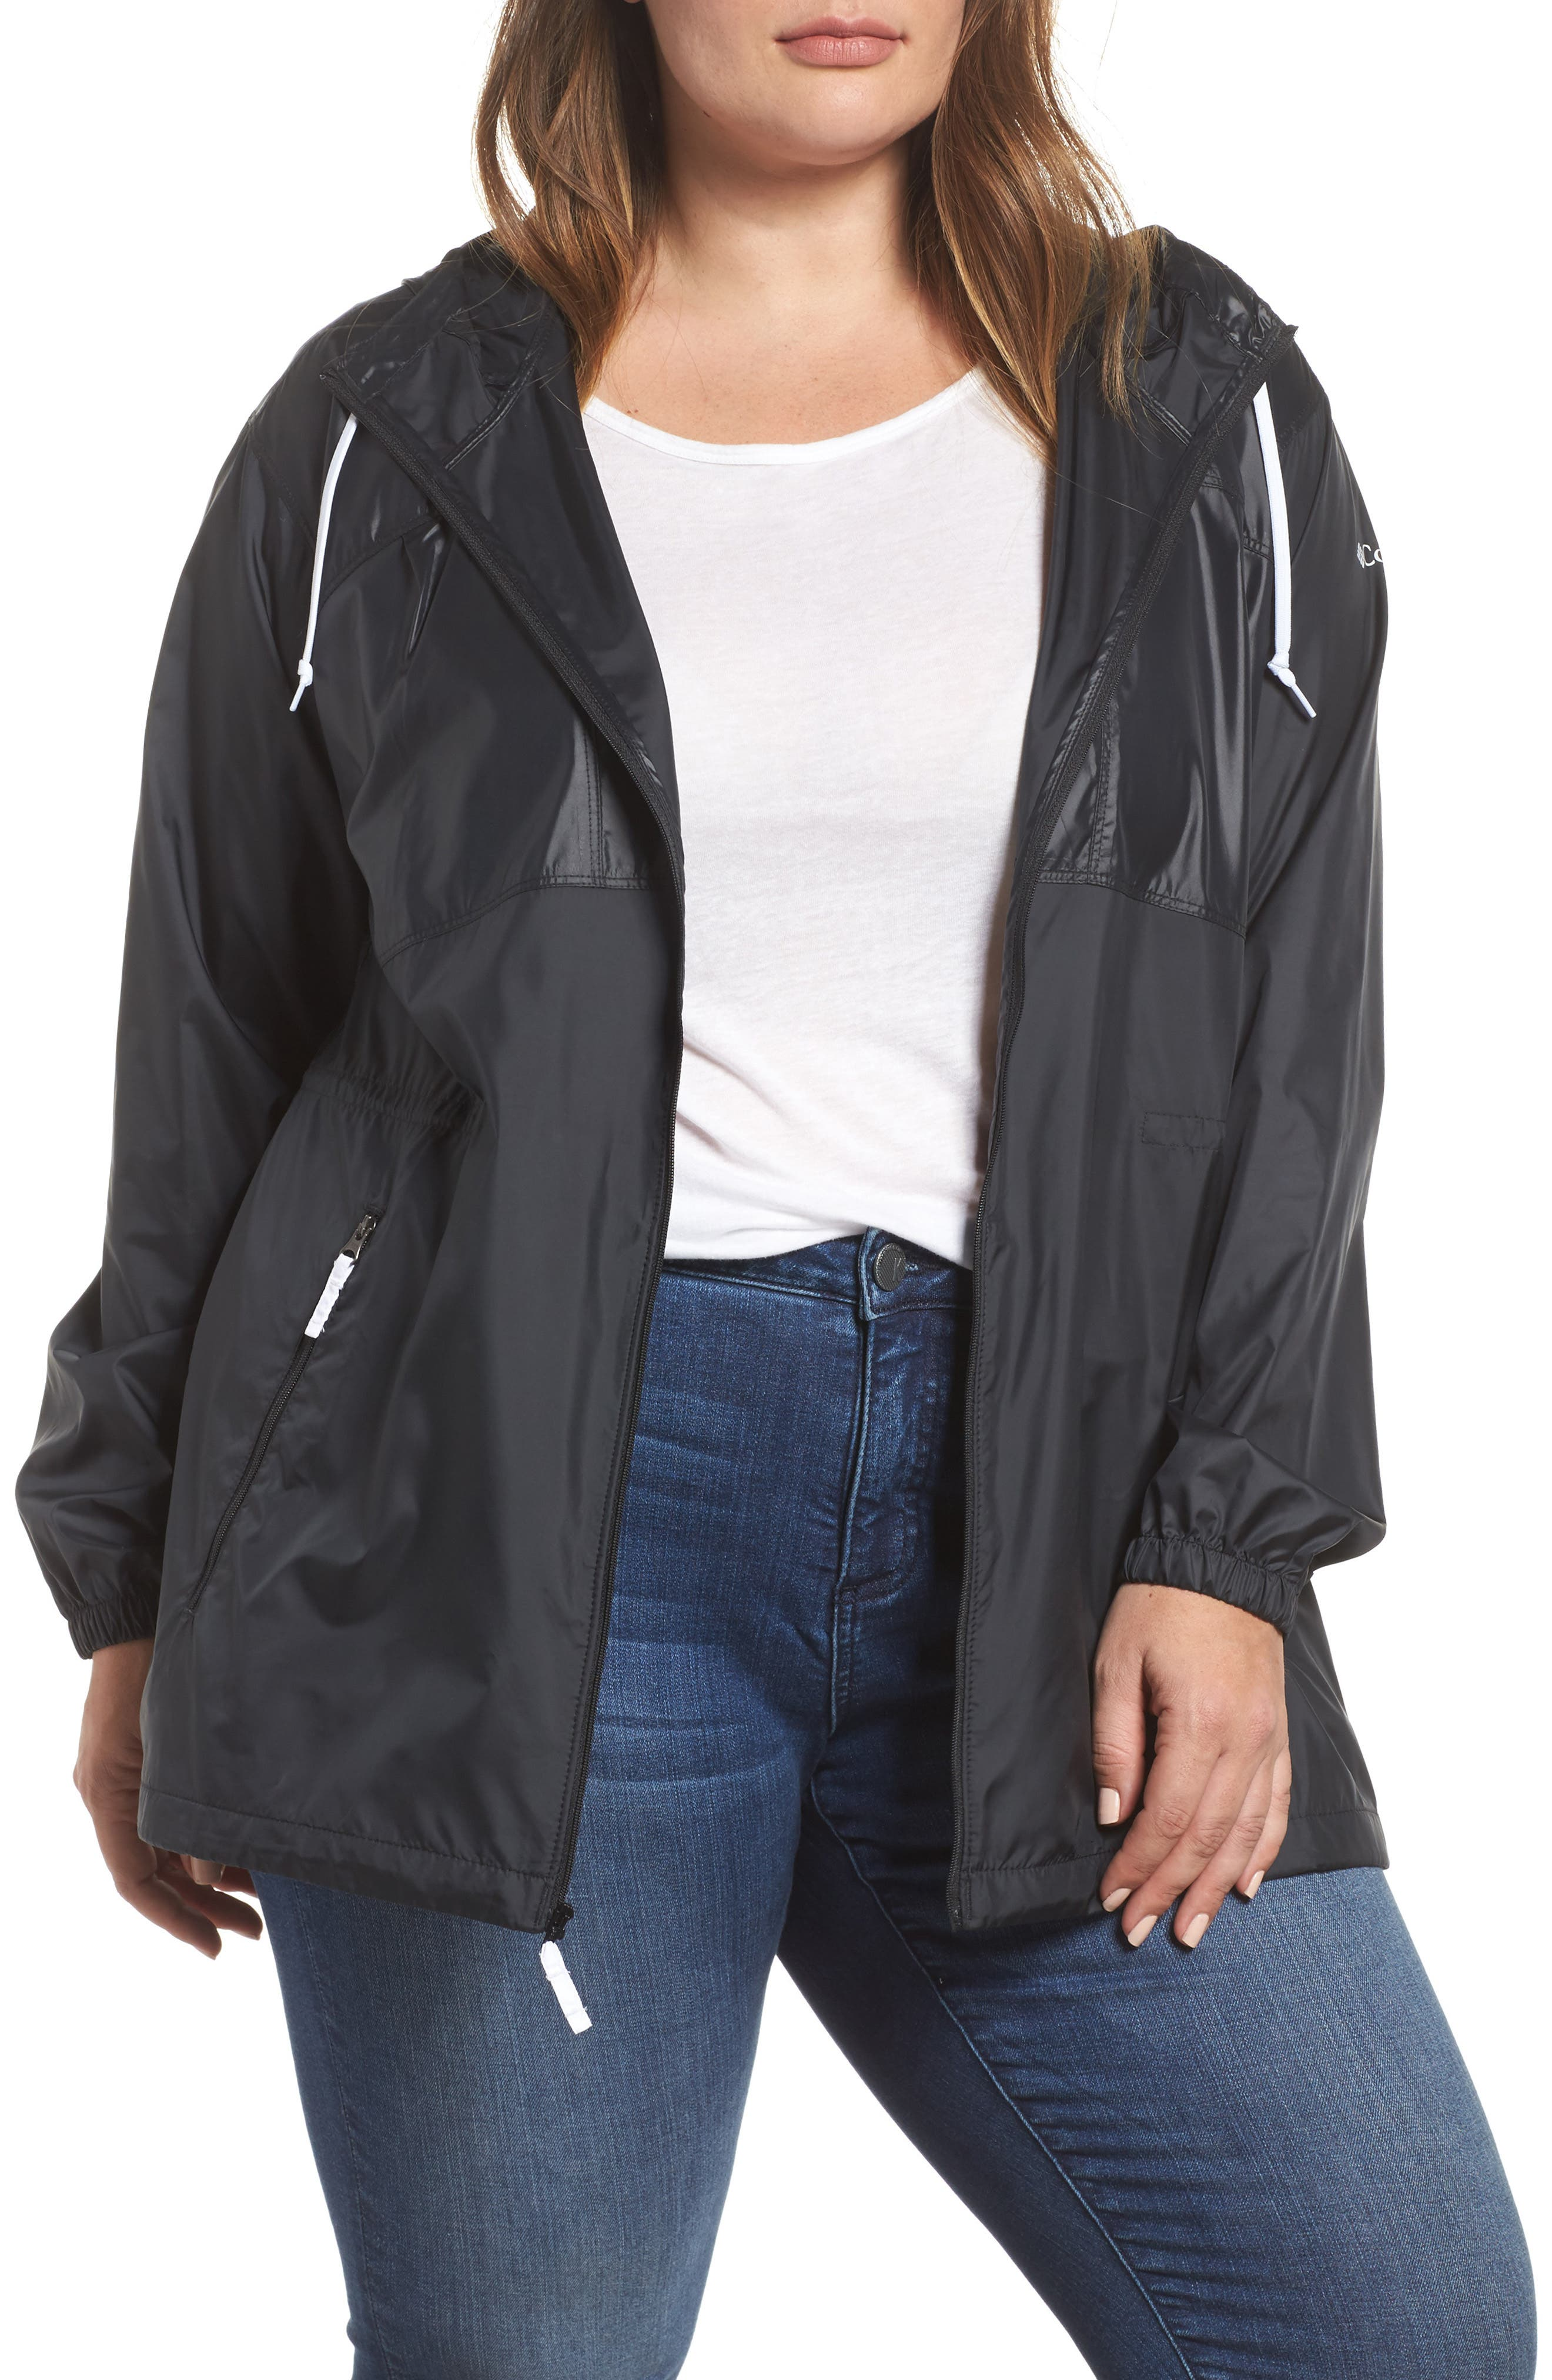 Flashback<sup>™</sup> Water Resistant Hooded Windbreaker,                             Main thumbnail 1, color,                             Black Shiny/ Matte White